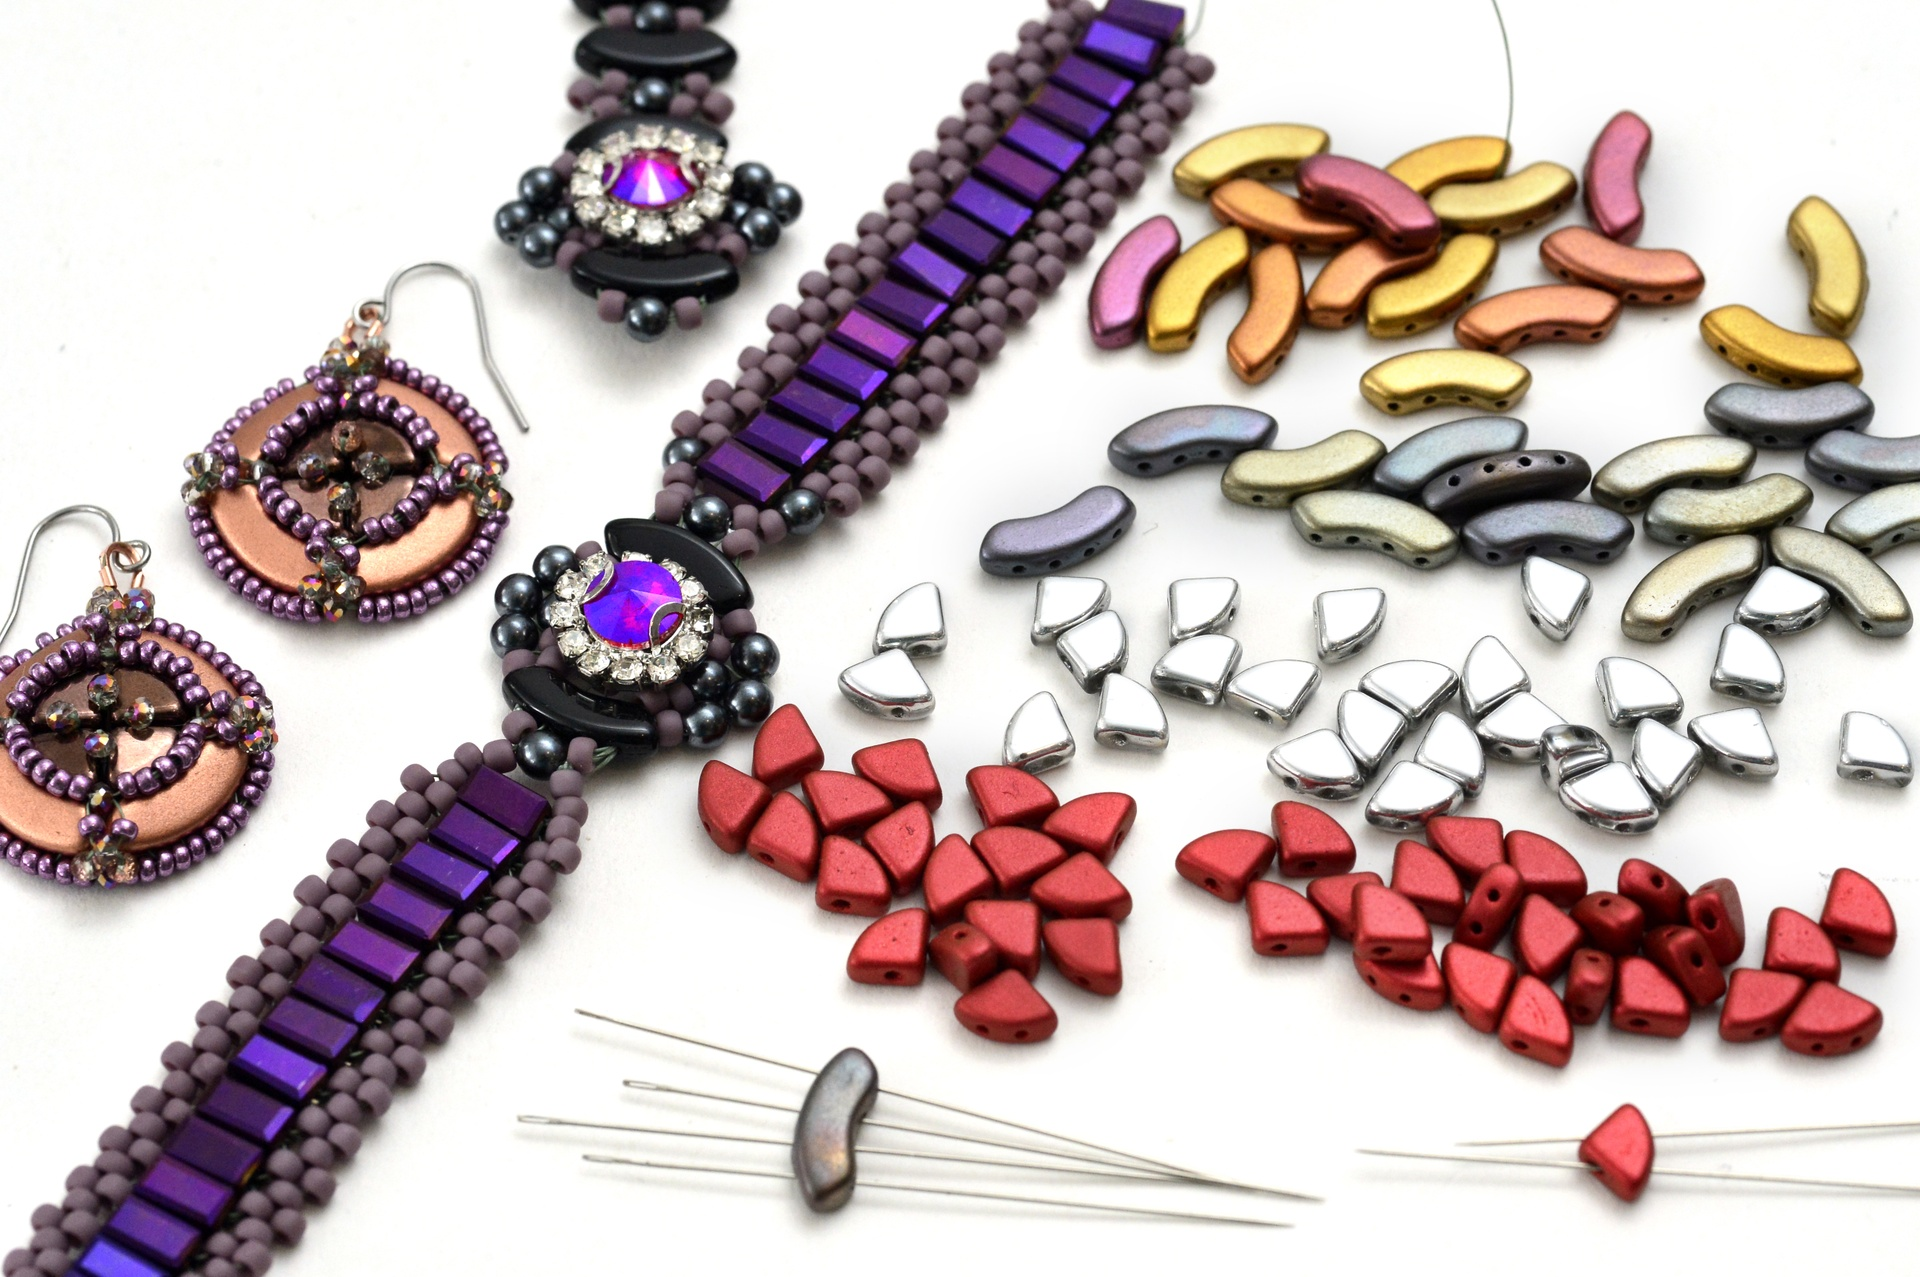 How to Bead Jewelry / Videos Sorted by Beads / QuadBow & PieDuo Bead Videos